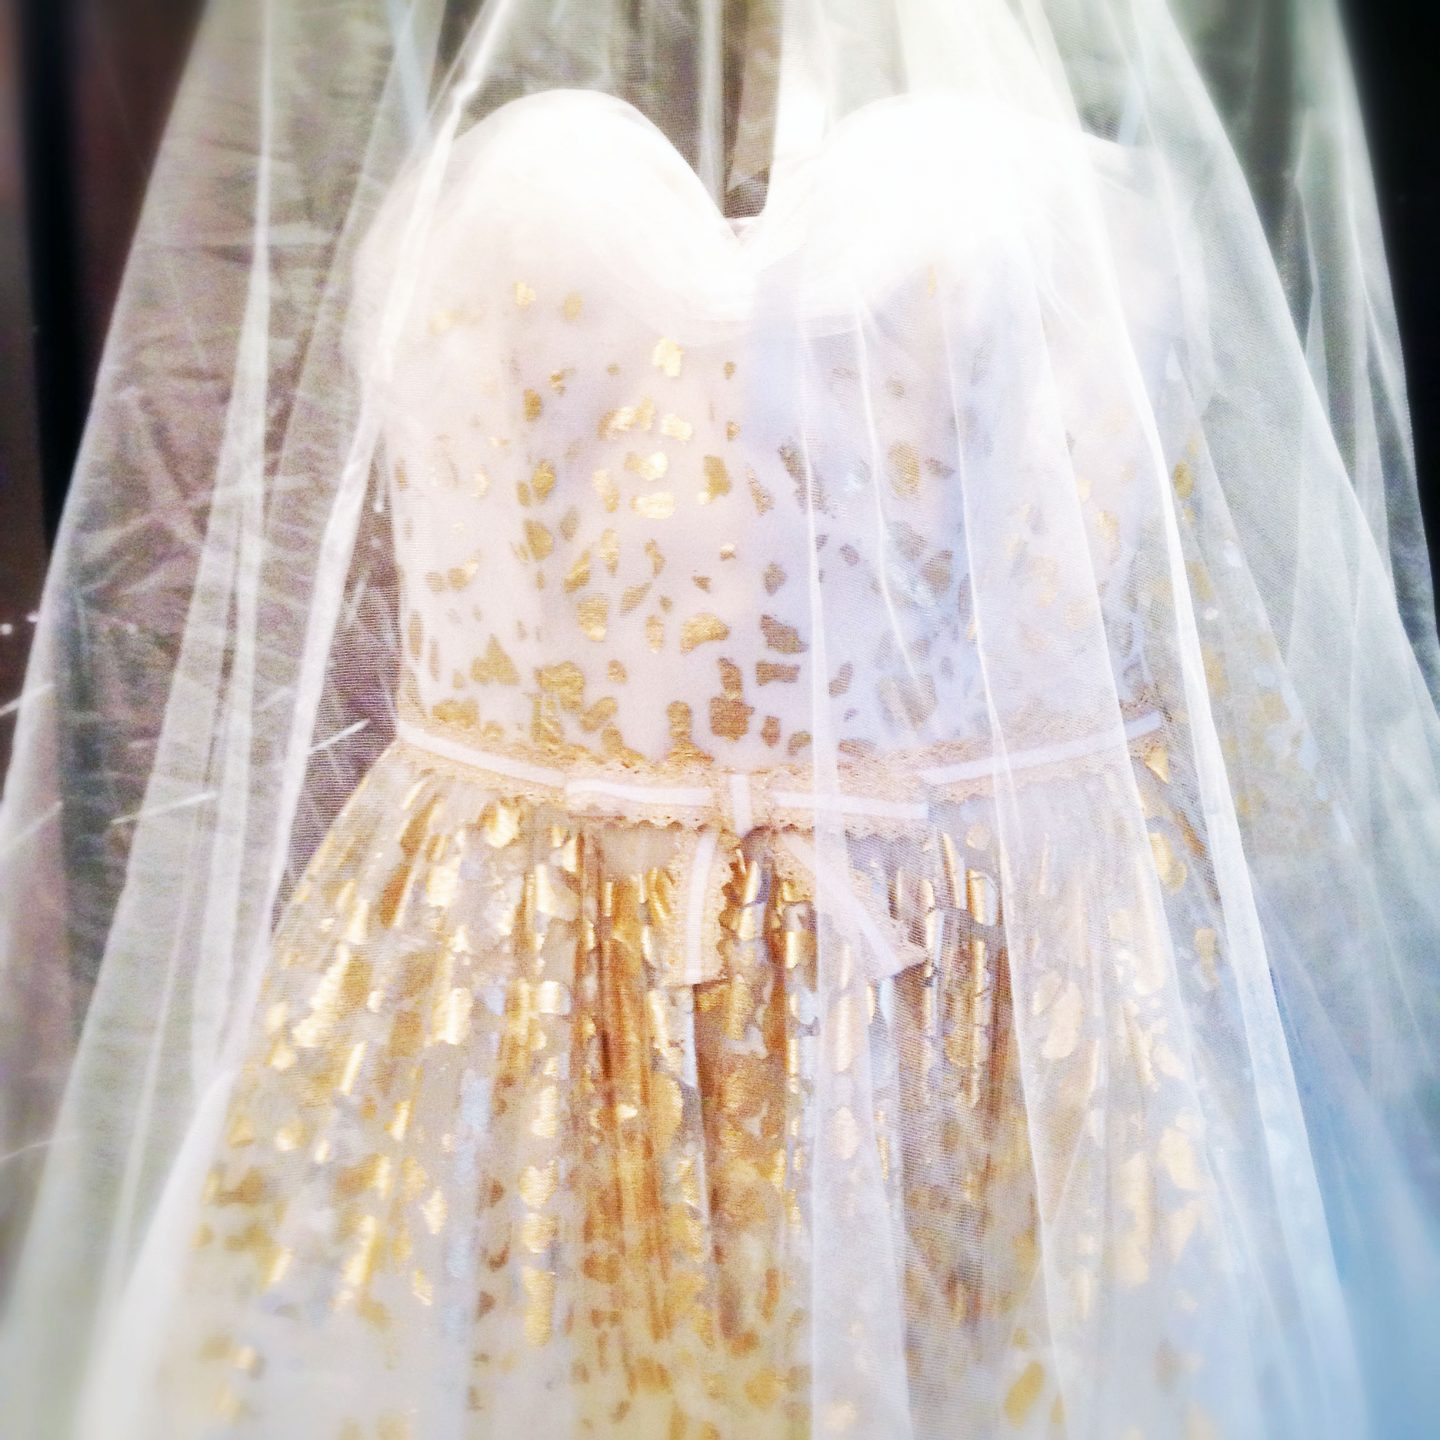 Luxe Shopping Experiences – Take The Stress Out of Wedding Planning